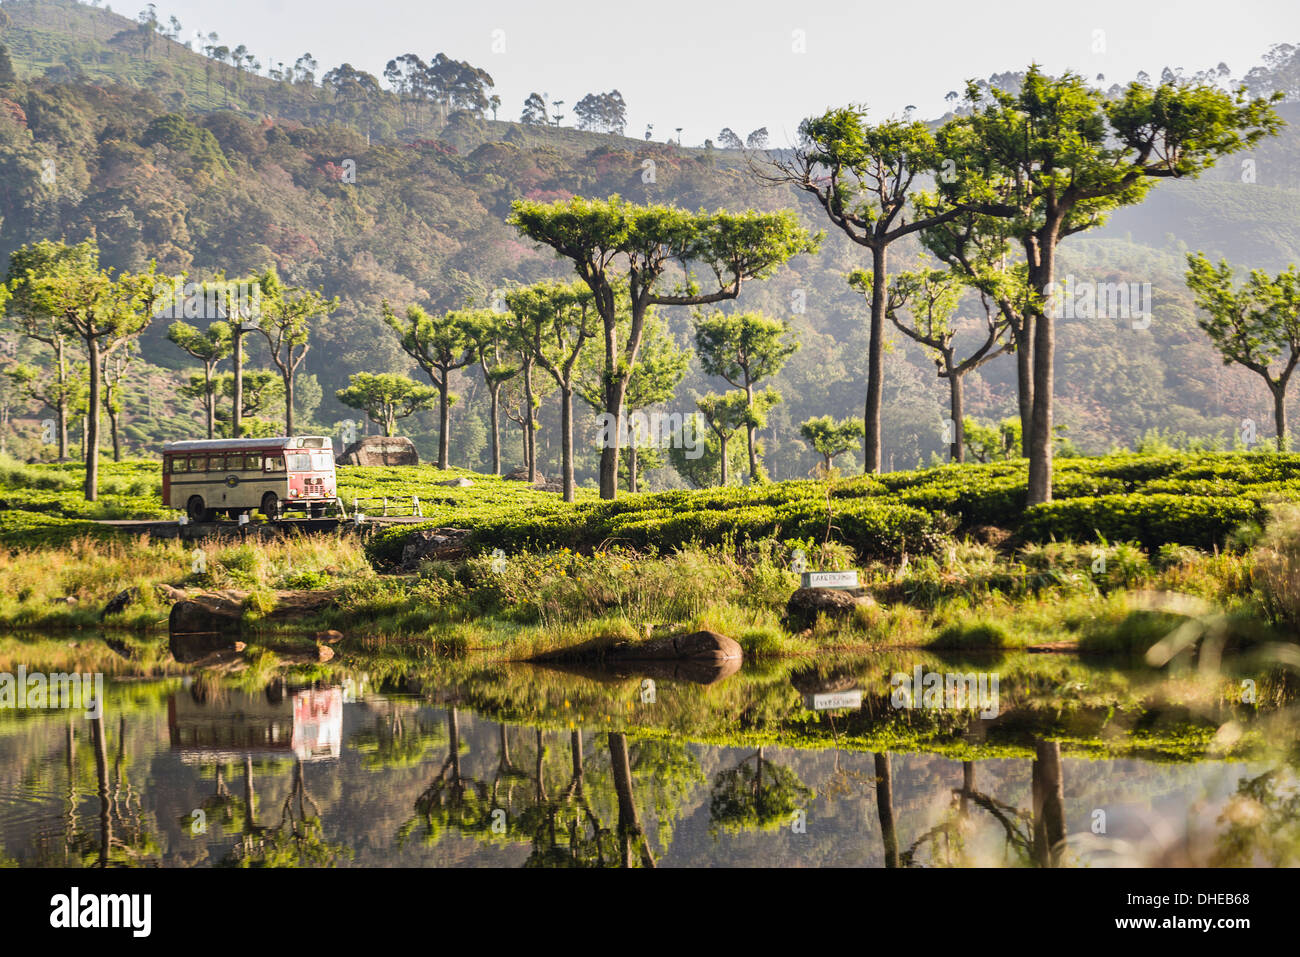 Haputale, reflections of a public bus in a lake in the Nuwara Eliya District, Sri Lanka Hill Country, Sri Lanka, Stock Photo